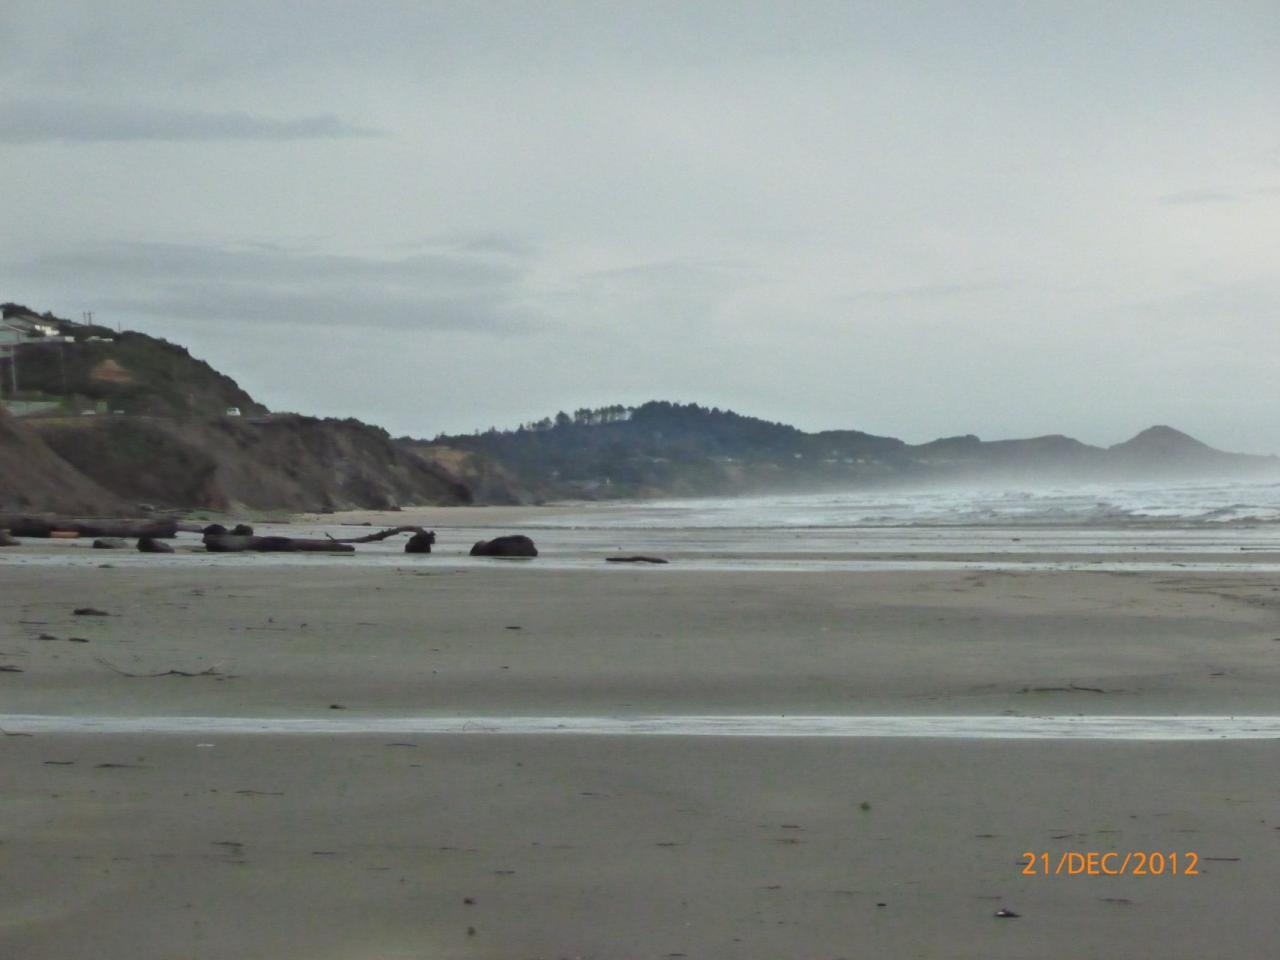 some of the driftlogs on beach, looking towards Beverly Beach.